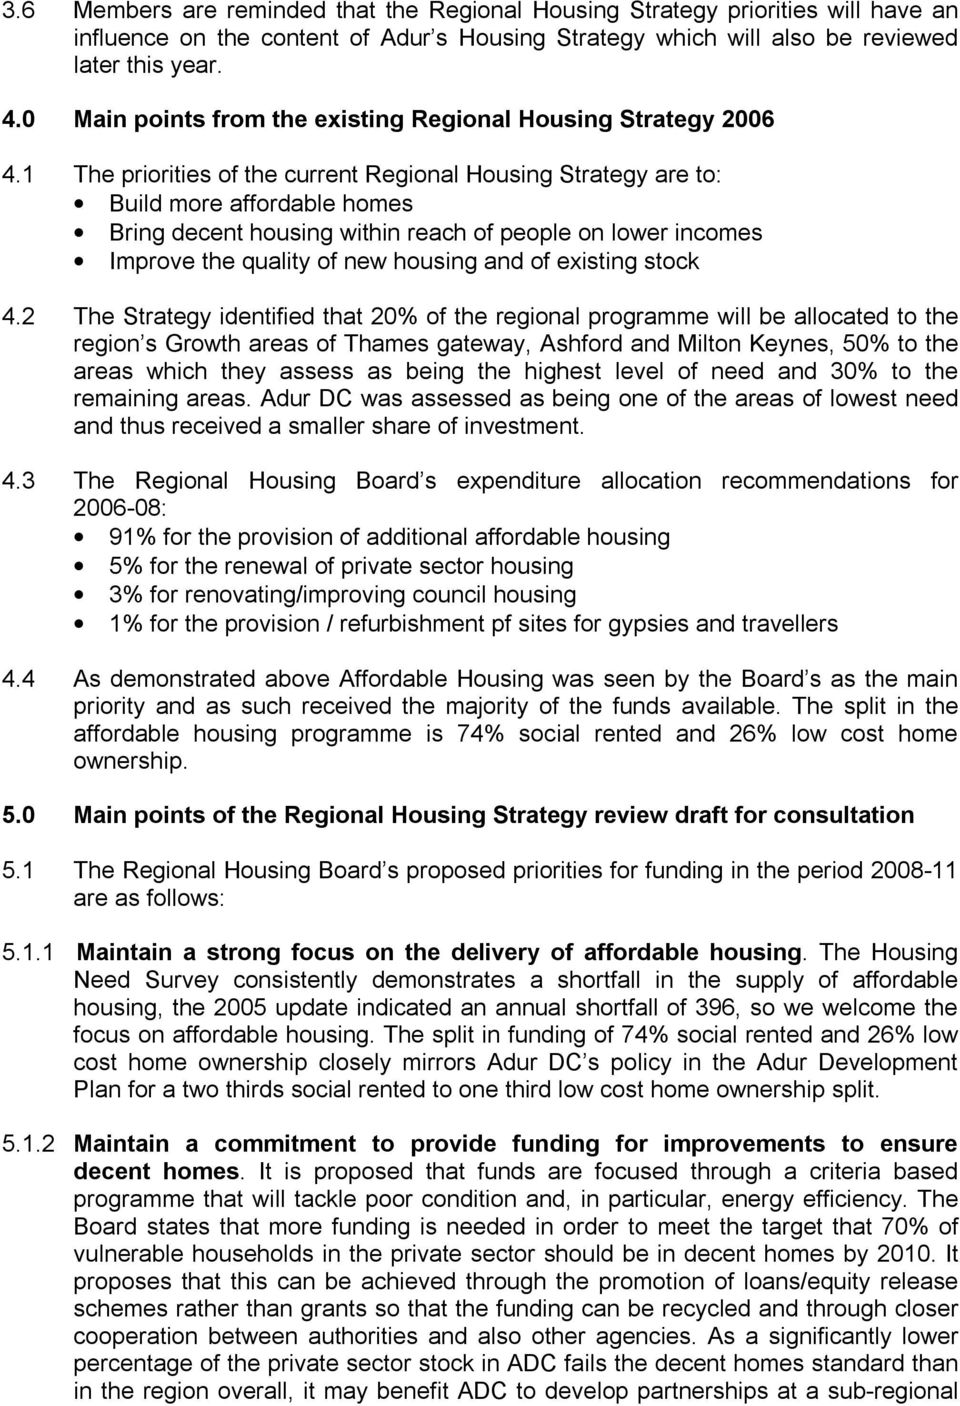 1 The priorities of the current Regional Housing Strategy are to: Build more affordable homes Bring decent housing within reach of people on lower incomes Improve the quality of new housing and of